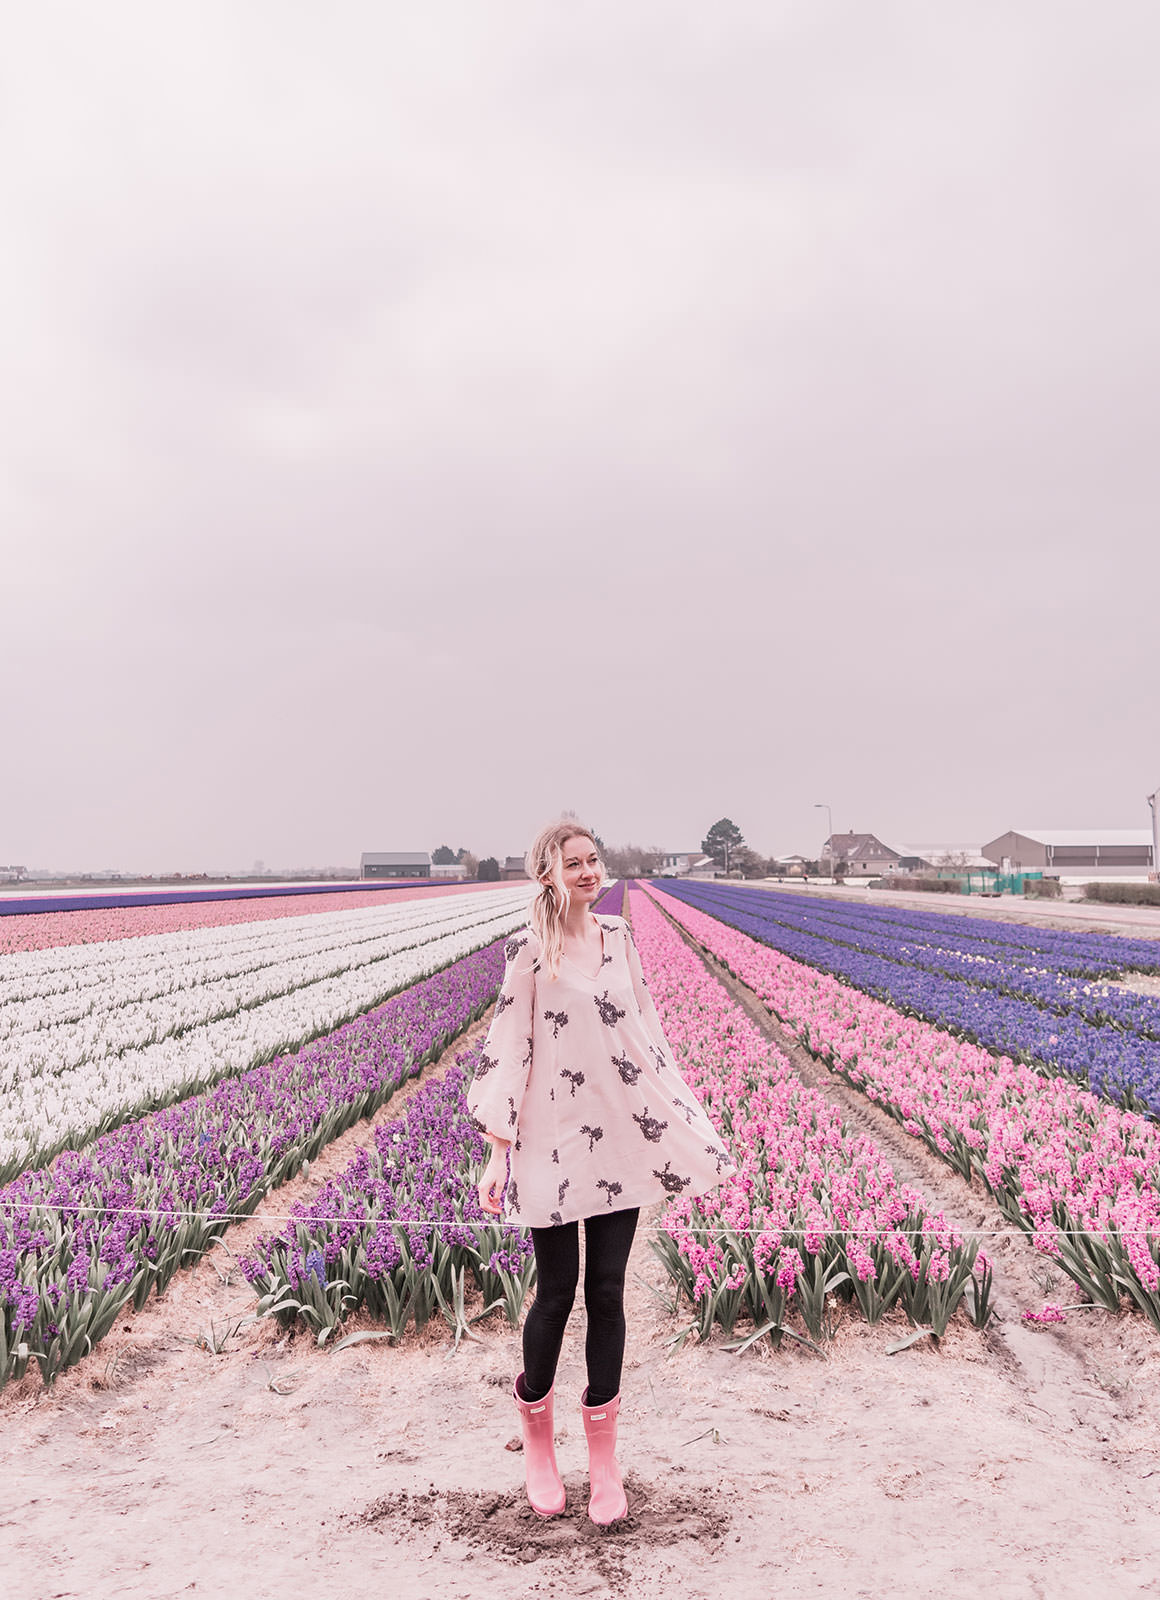 Weekend in the Netherlands - Lisse, Keukenhof